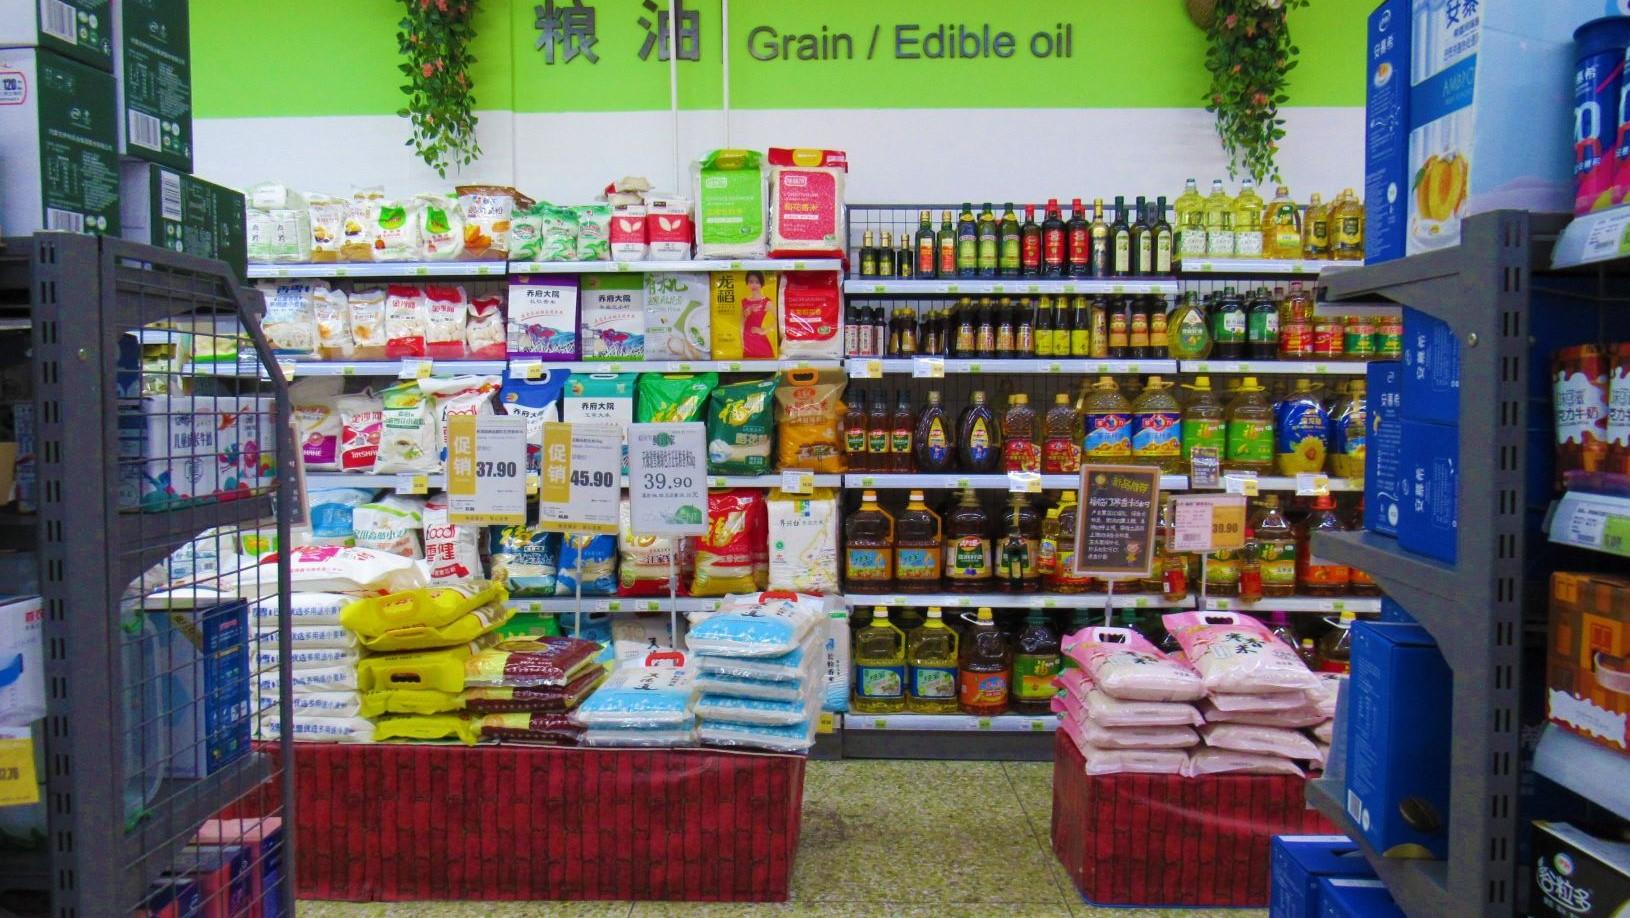 Commodity food prices soften after 12 months of increases